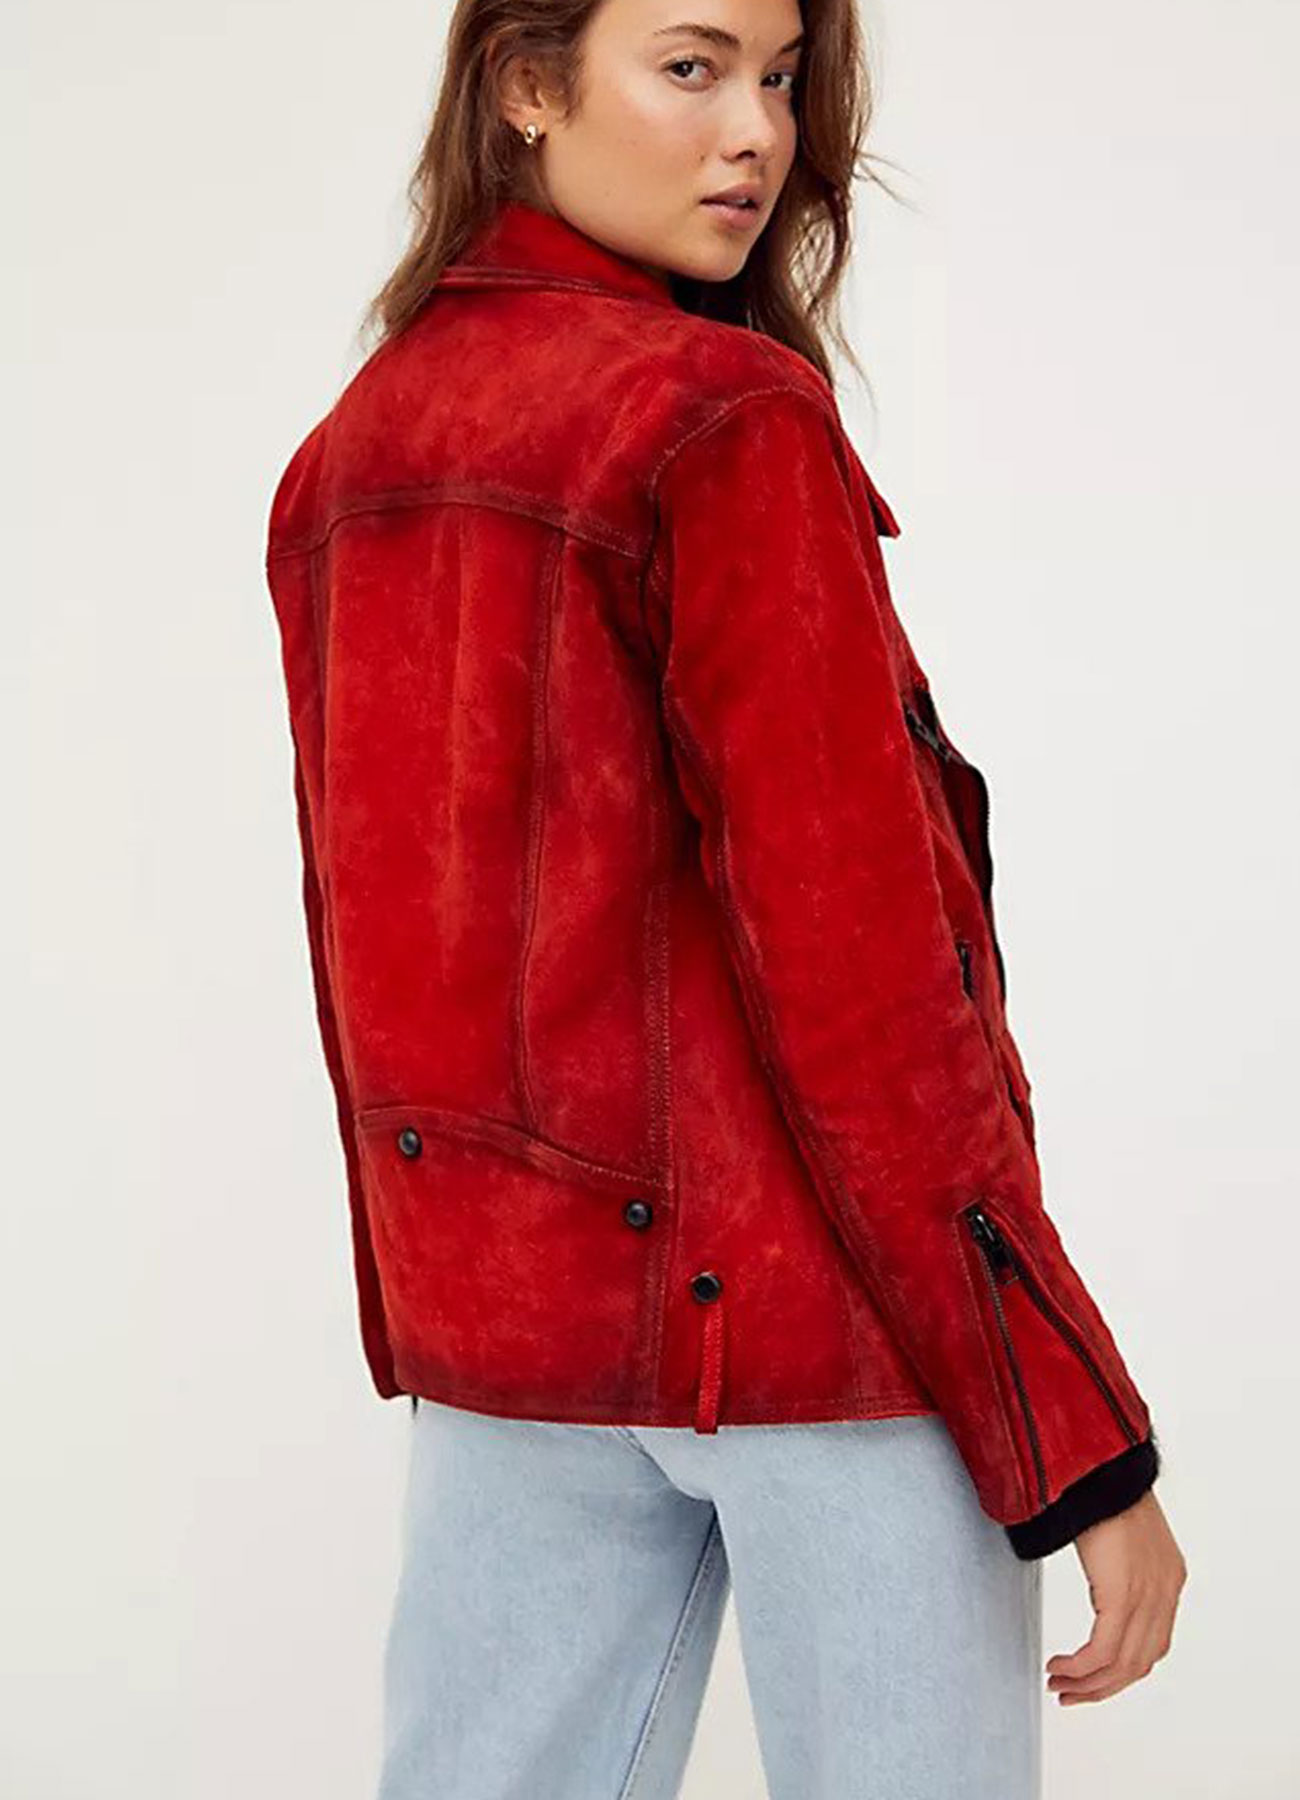 Women's Fashion Red Suede Leather Moto Jacket